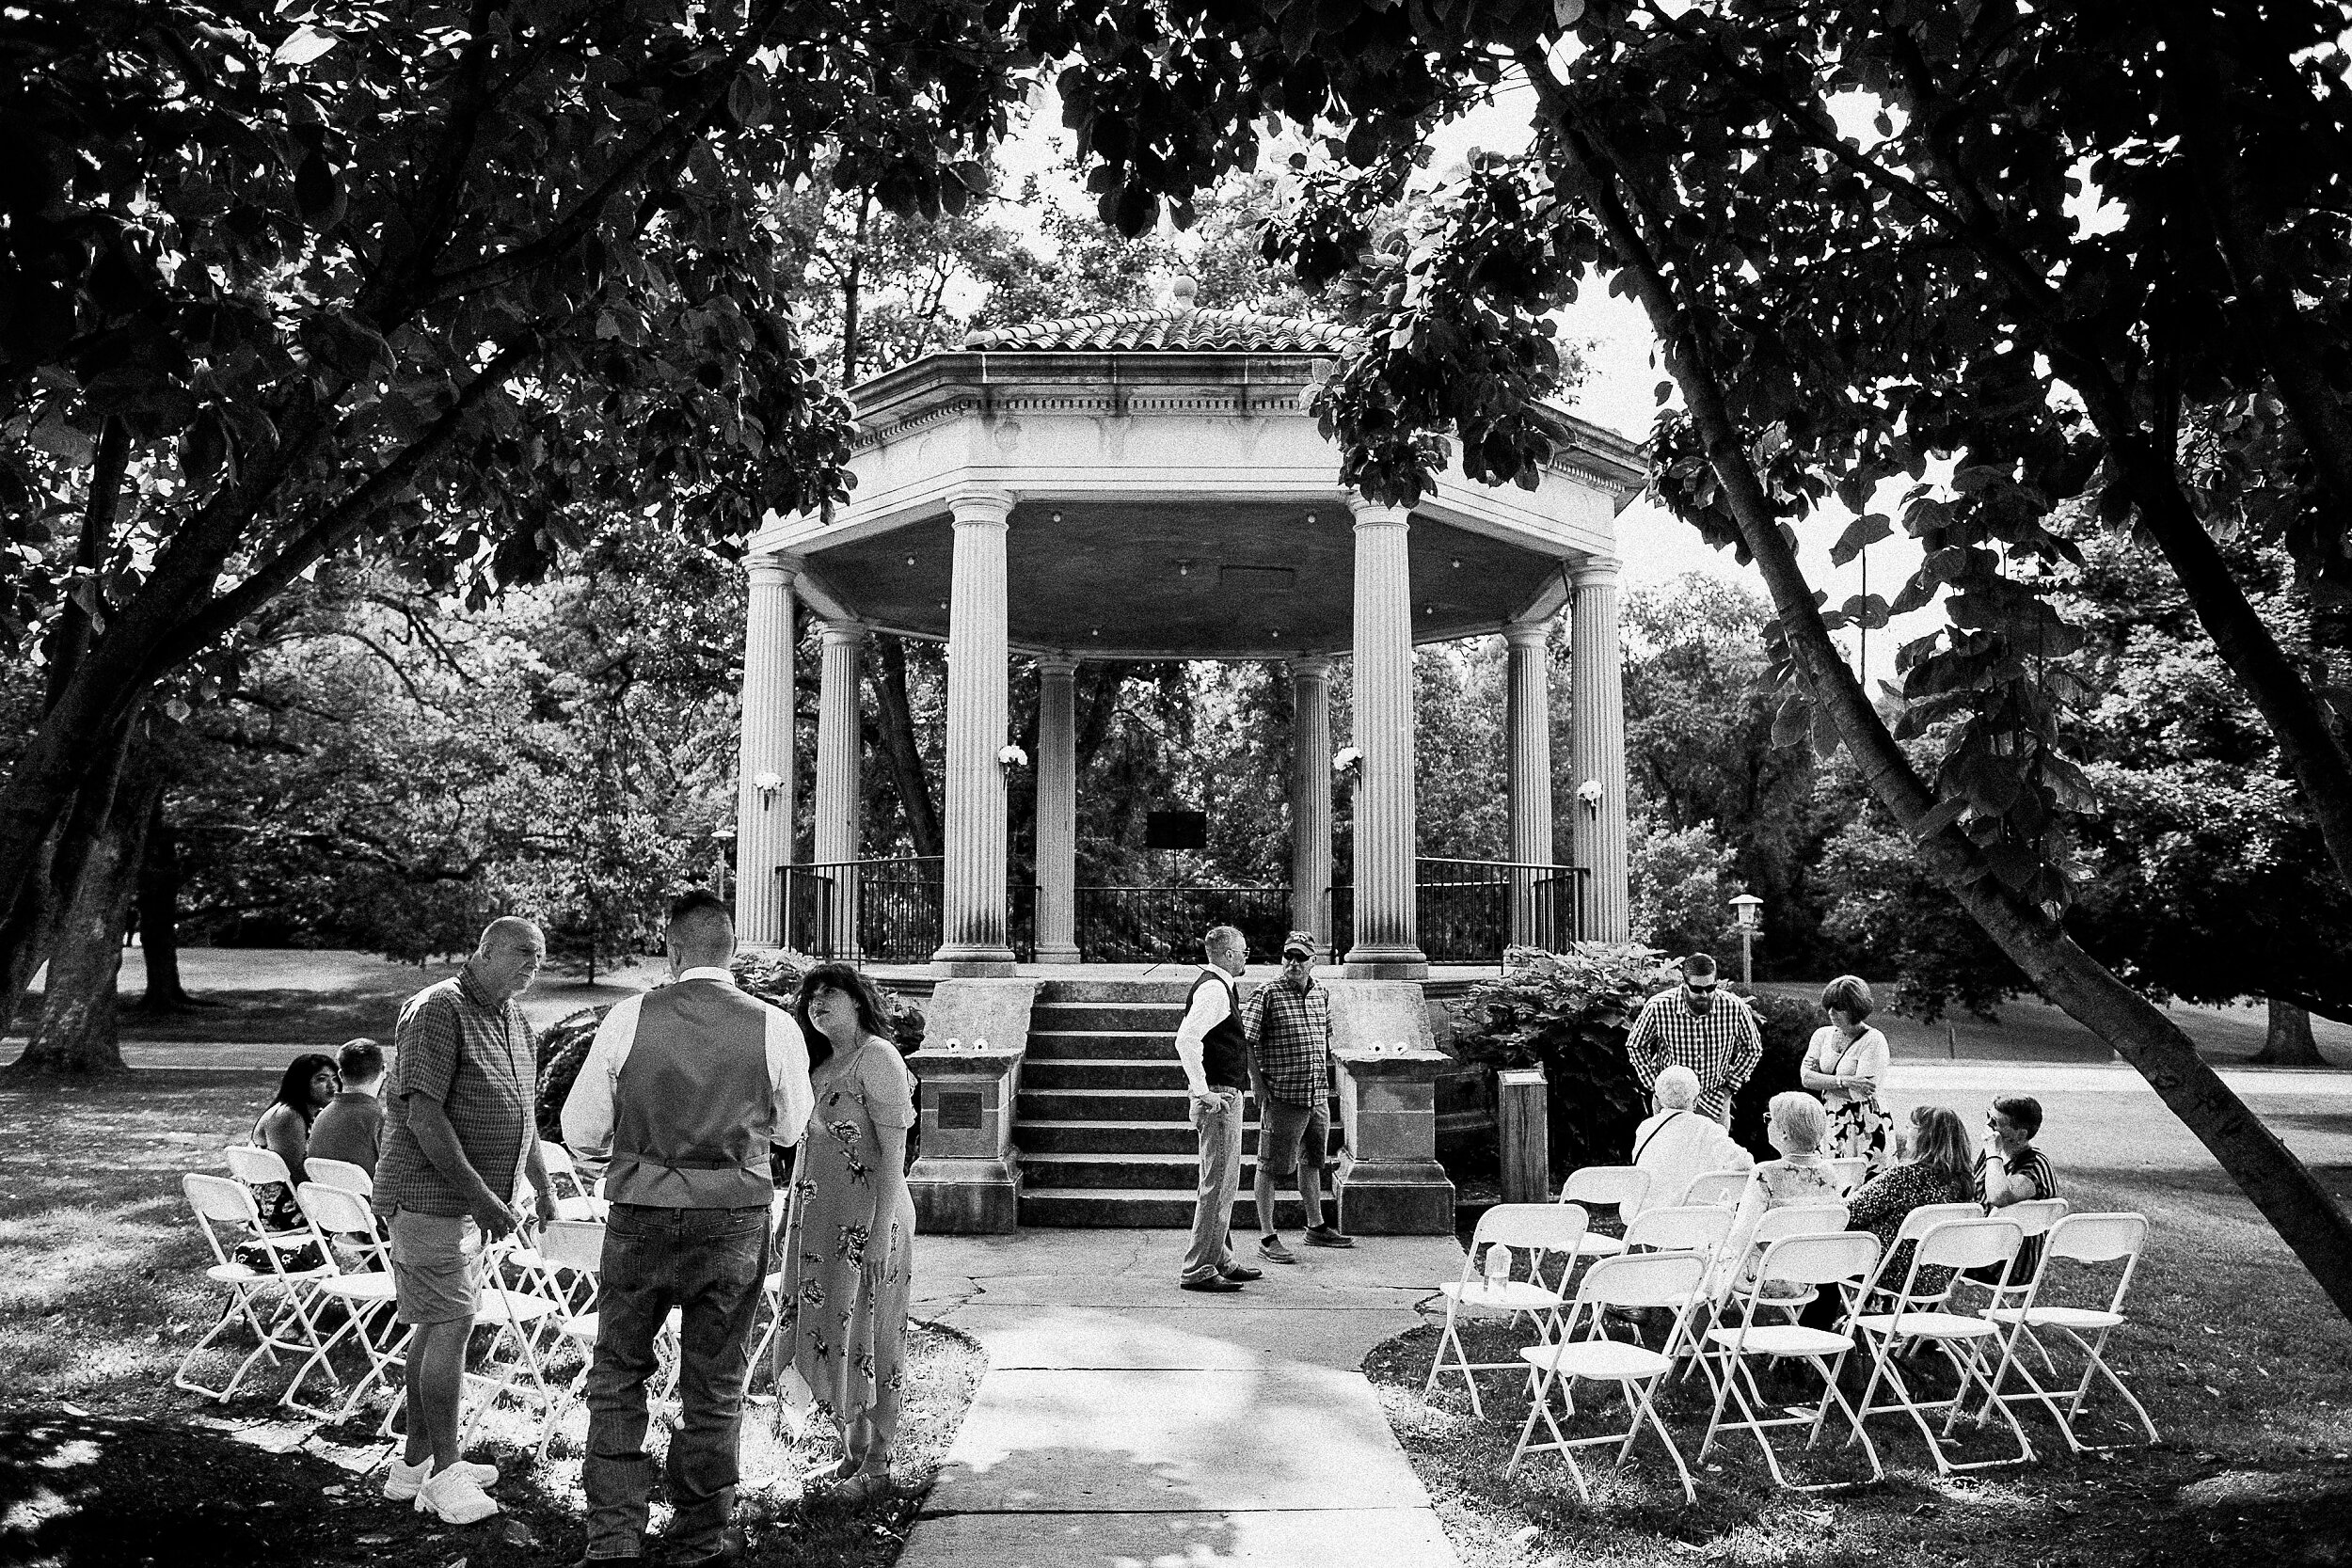 washington-park-gazebo-springfield-il-wedding-photography_0013.jpg